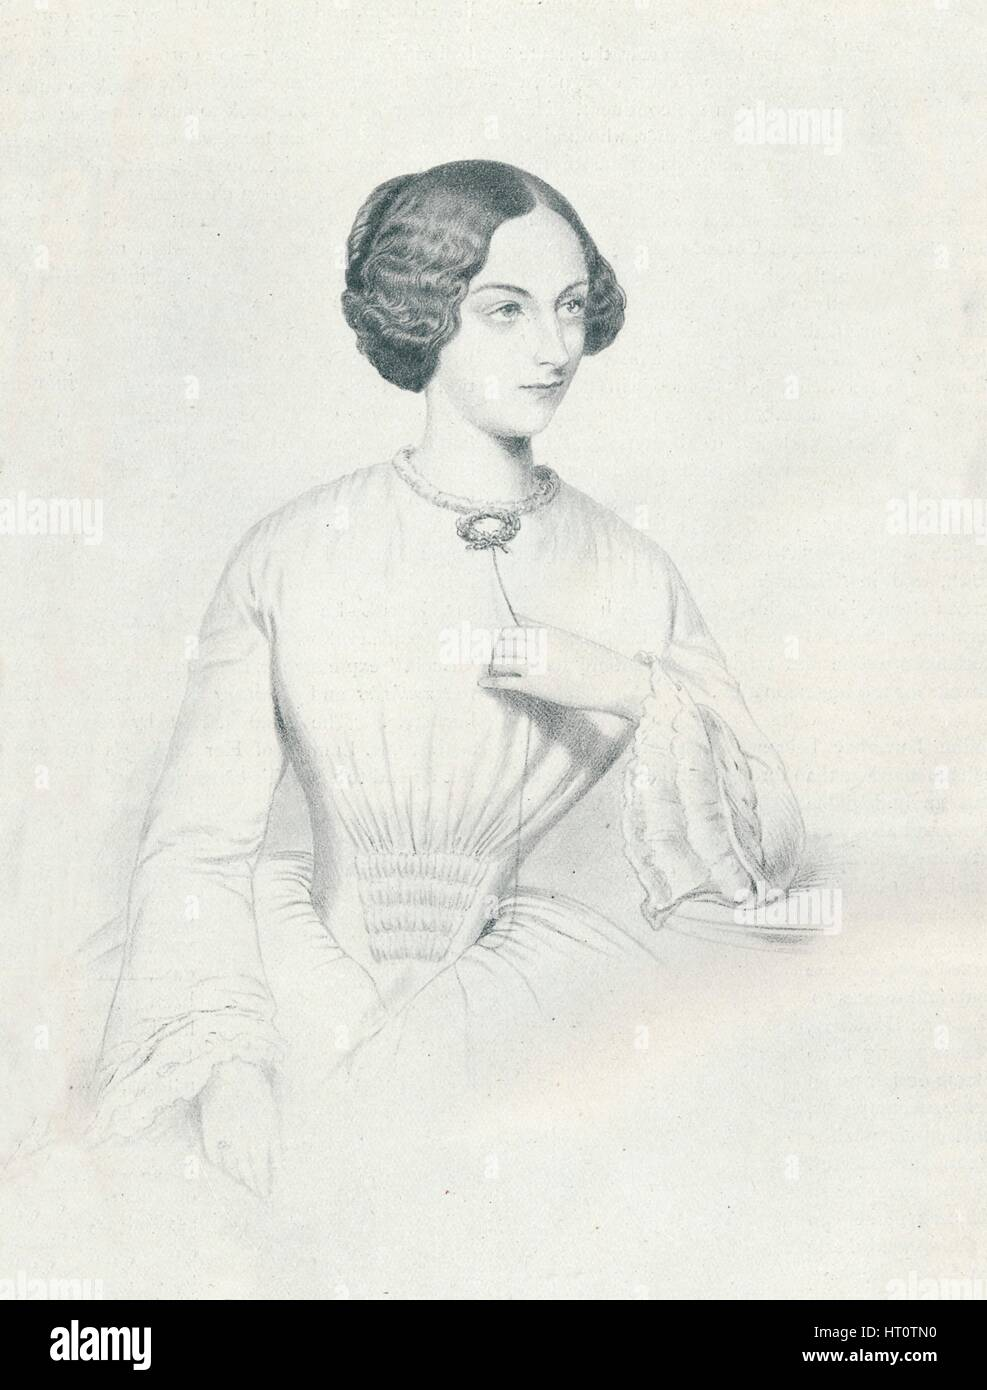 'Johanna Wagner', 1852. Artist: Richard James Lane. - Stock Image